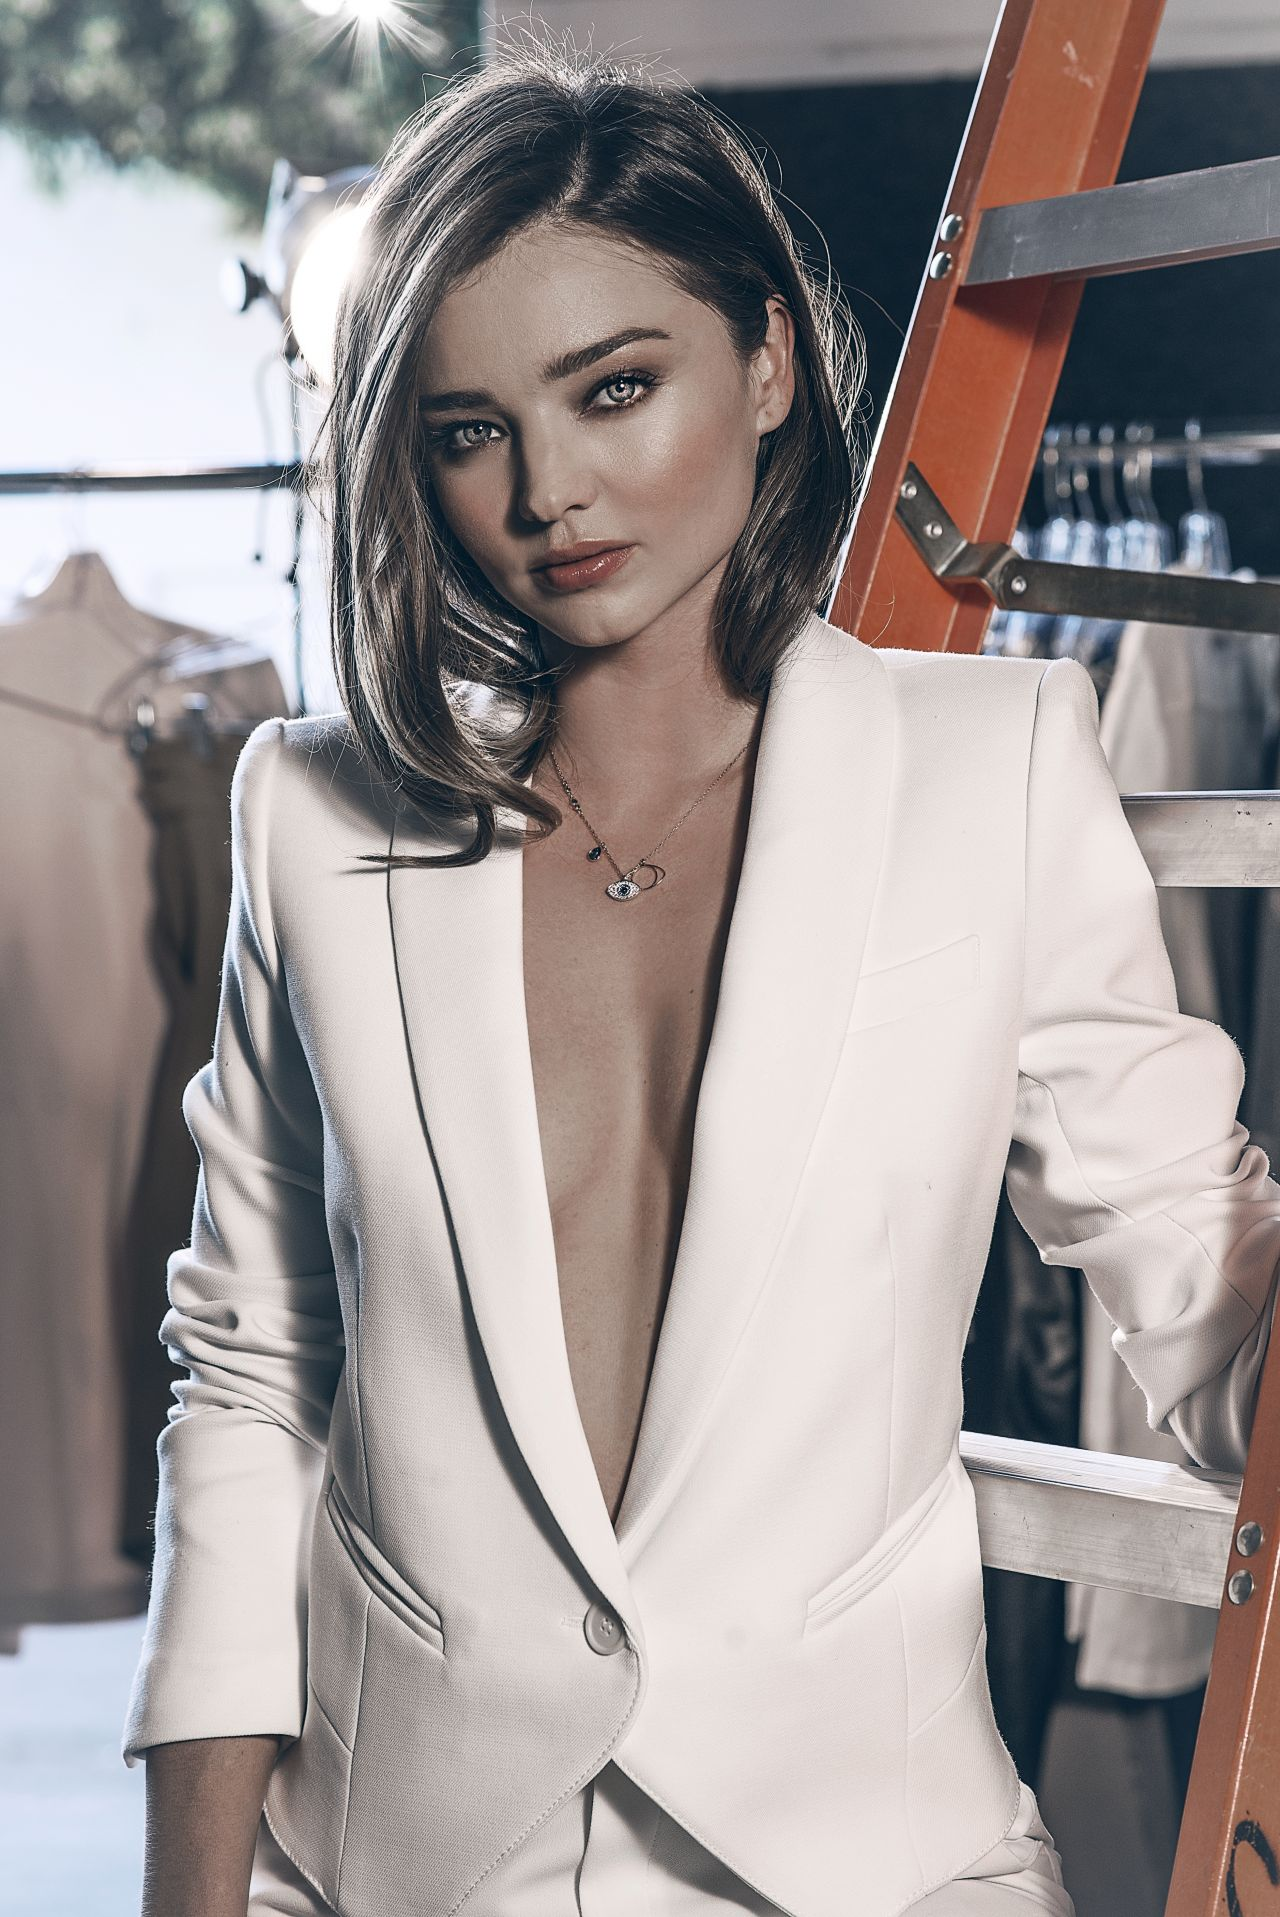 Miranda Kerr Photoshoot – Swarovski Holiday 2015 Collection Miranda Kerr